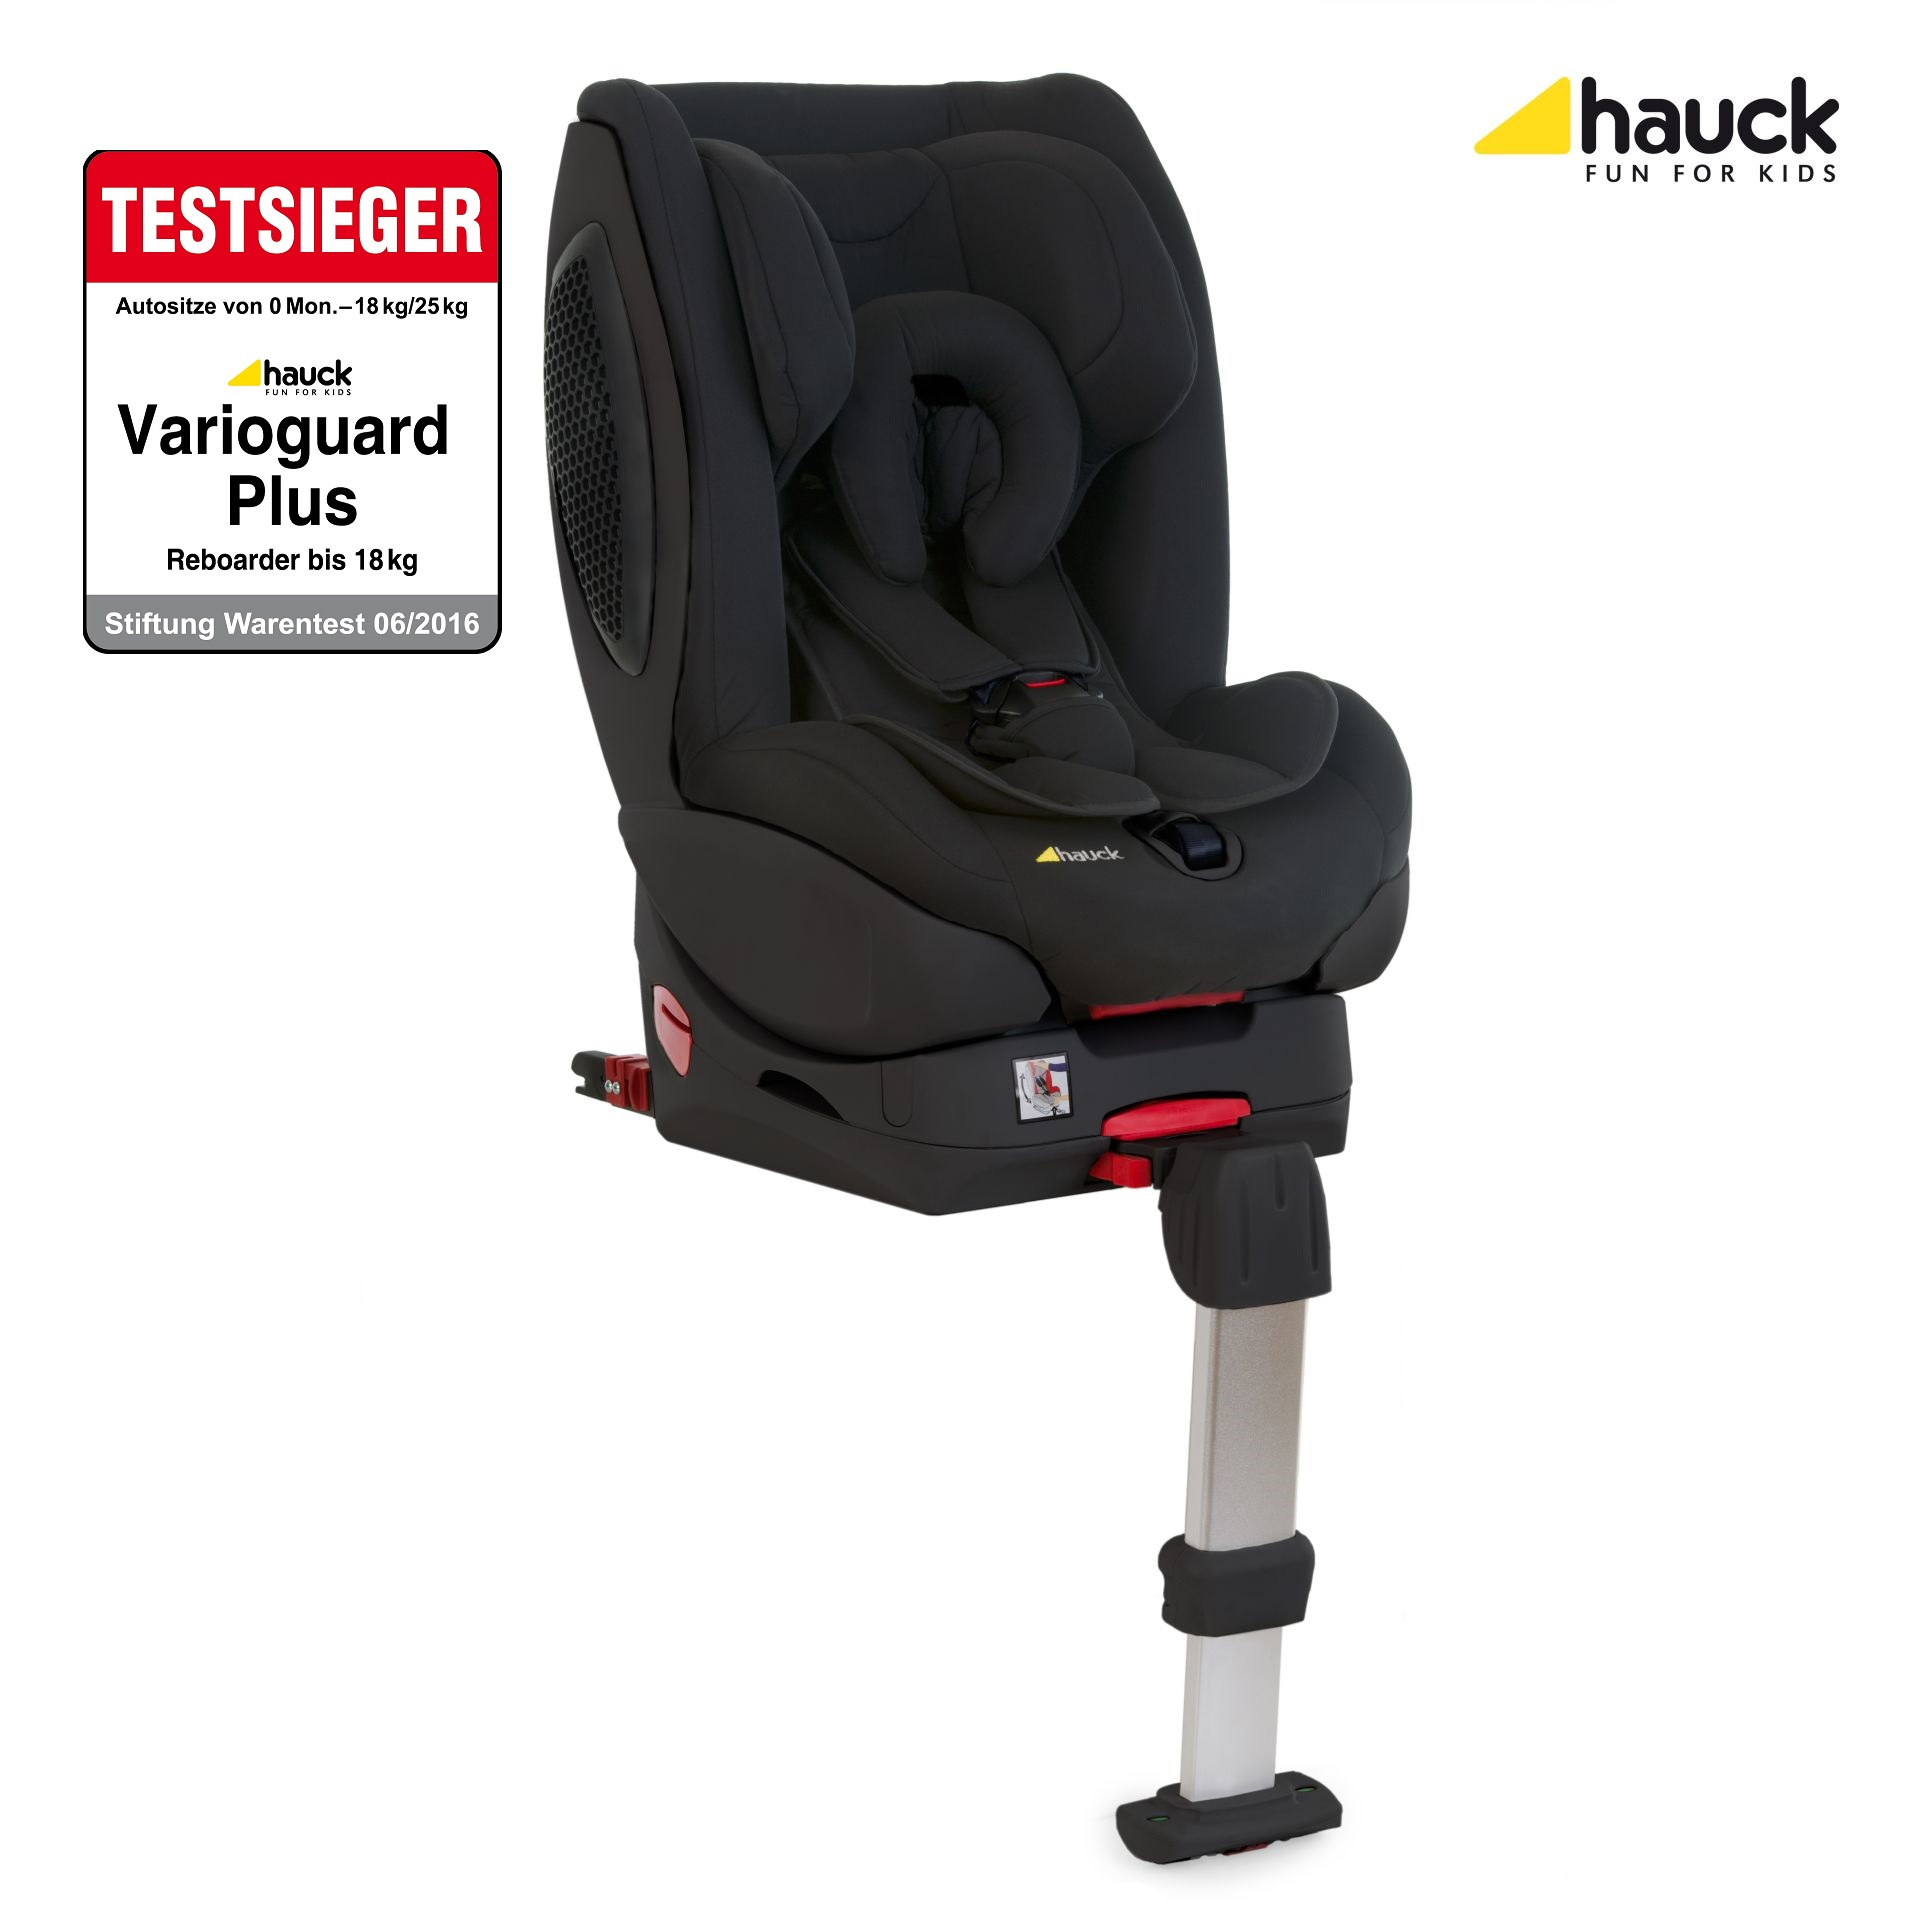 hauck reboard kindersitz varioguard plus inkl isofix basis 2017 black edition online kaufen bei. Black Bedroom Furniture Sets. Home Design Ideas